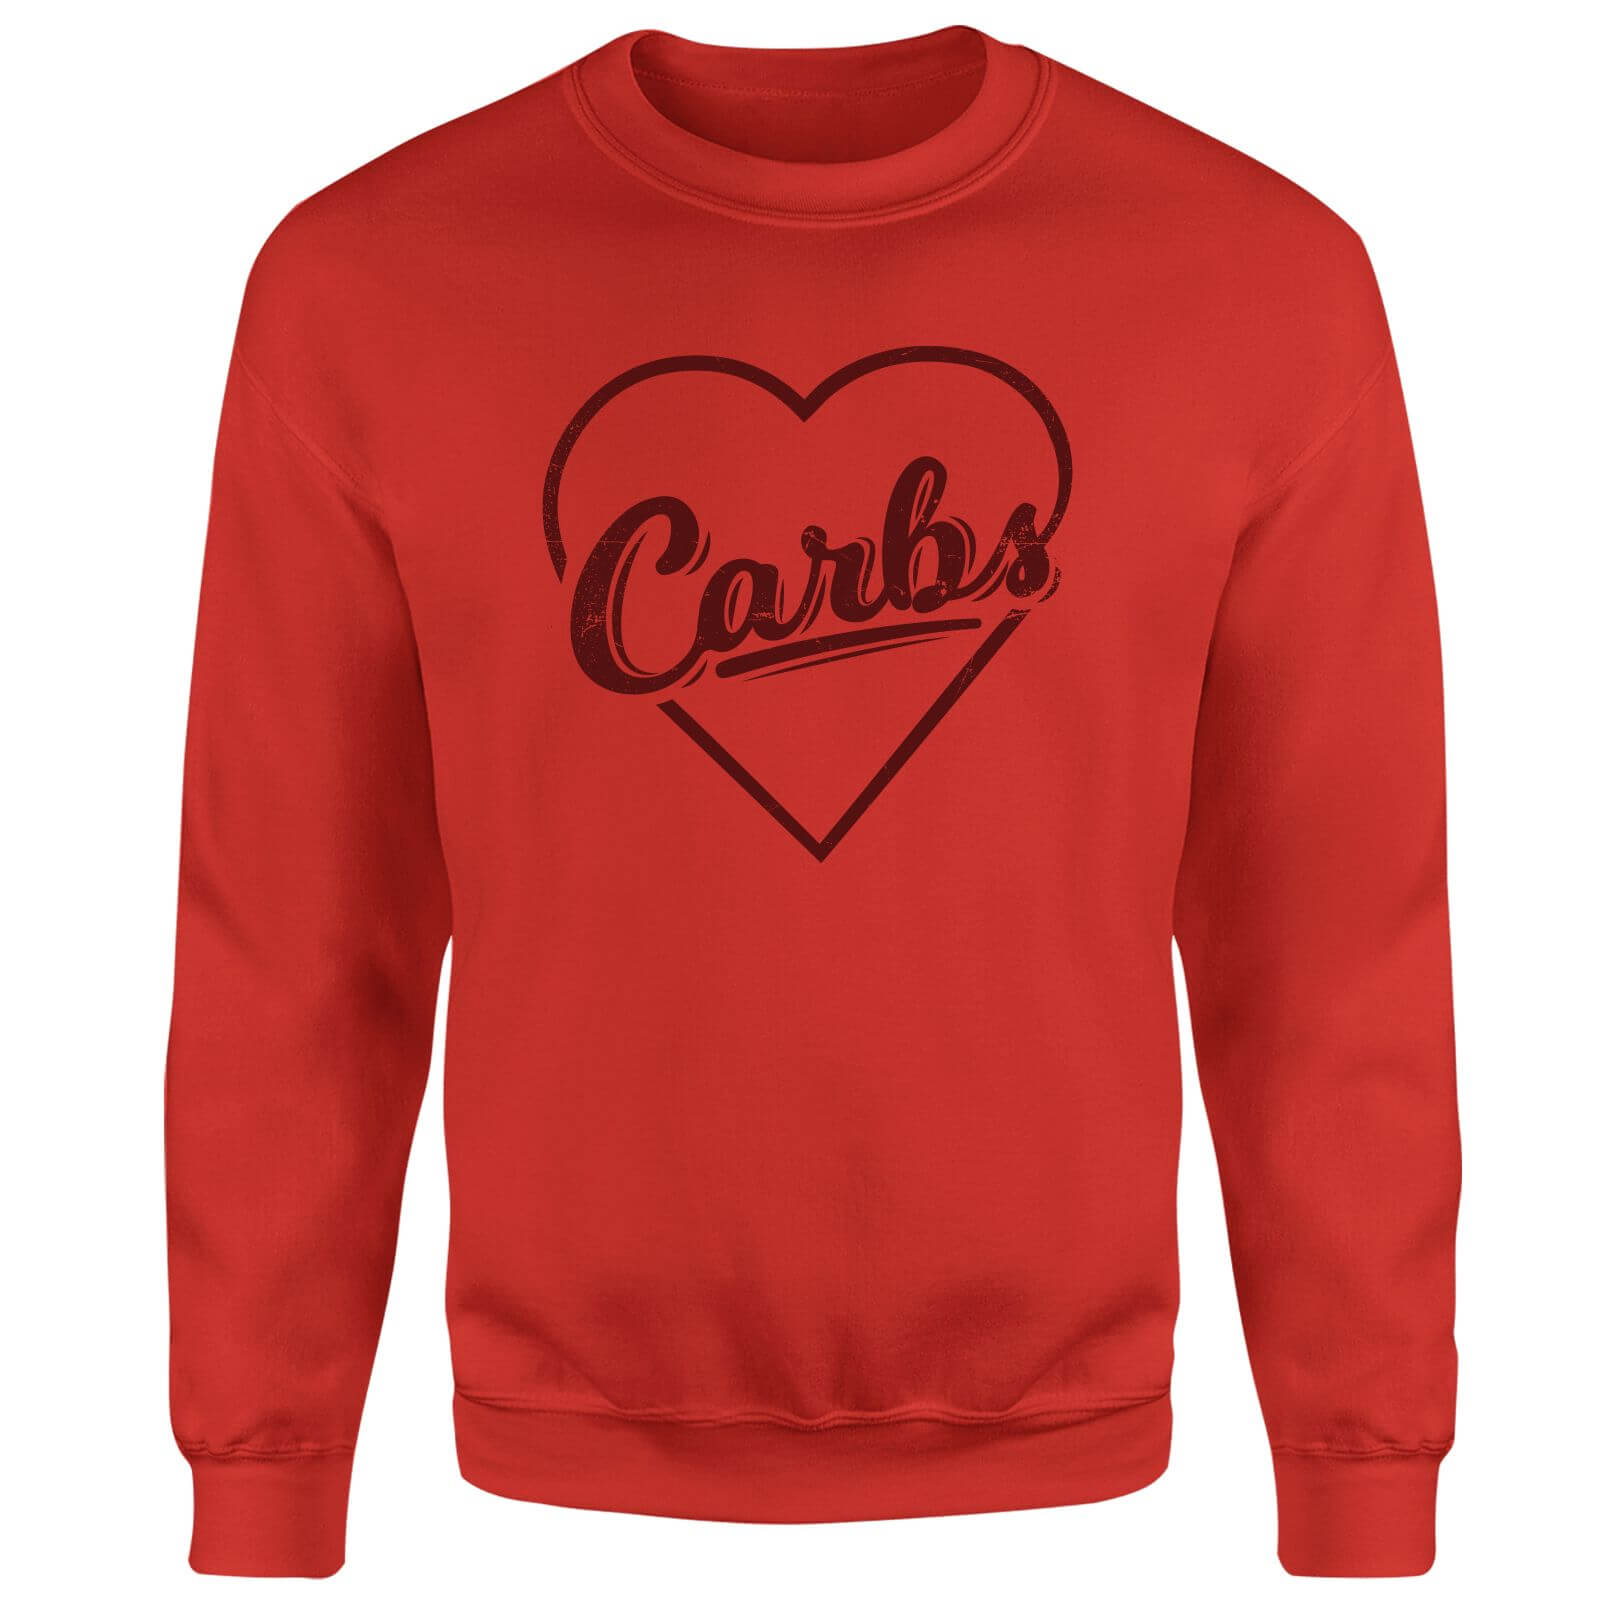 Love Carbs Sweatshirt - Red